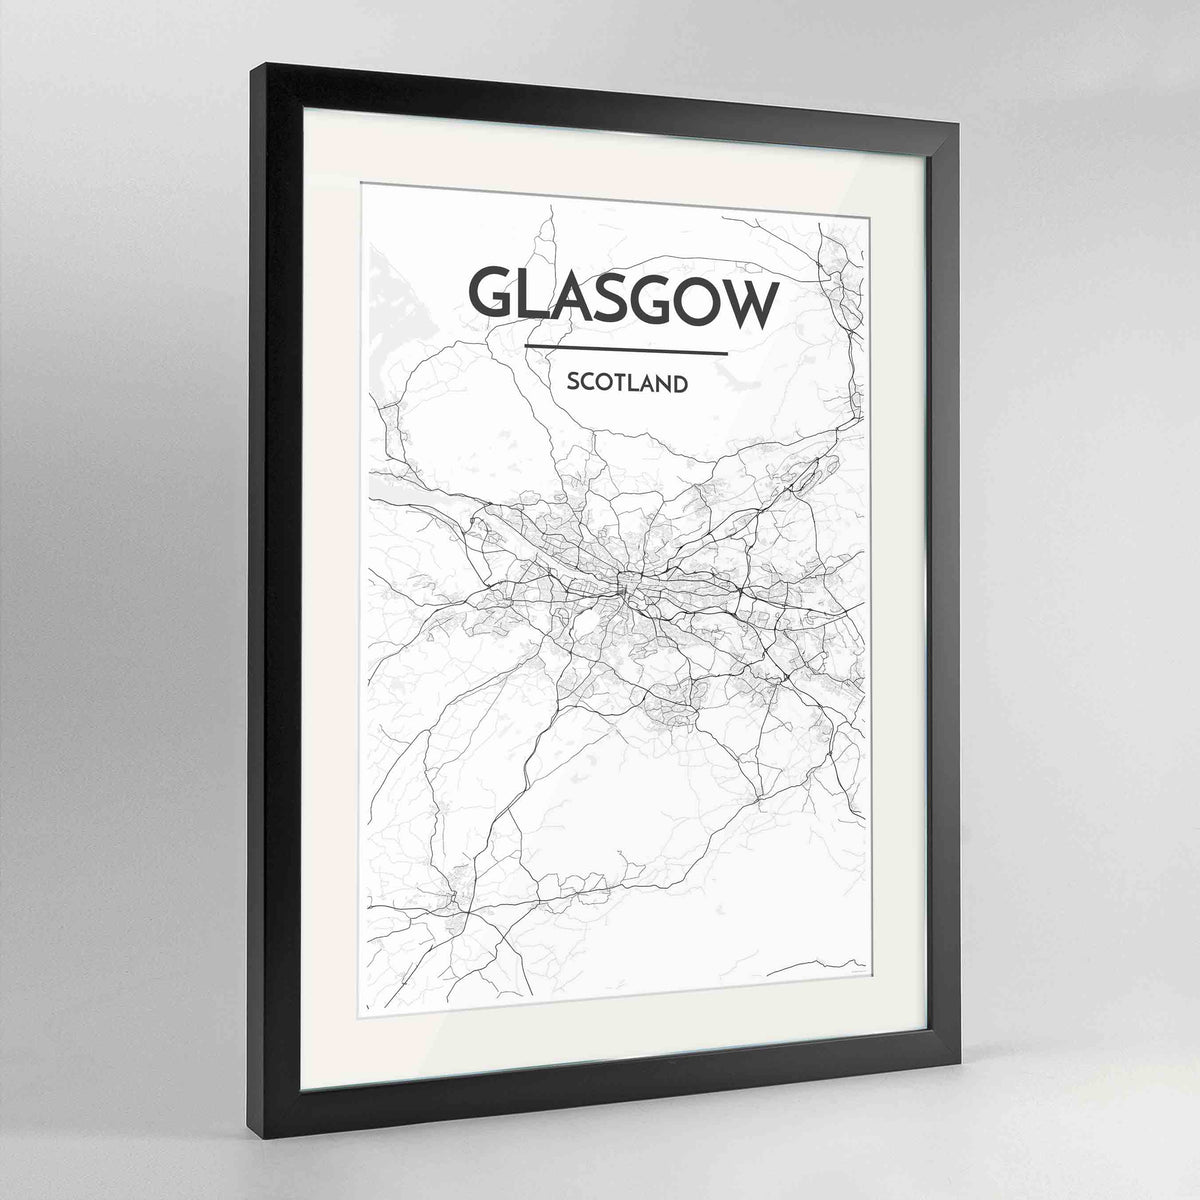 "Framed Glasgow Map Art Print 24x36"" Contemporary Black frame Point Two Design Group"